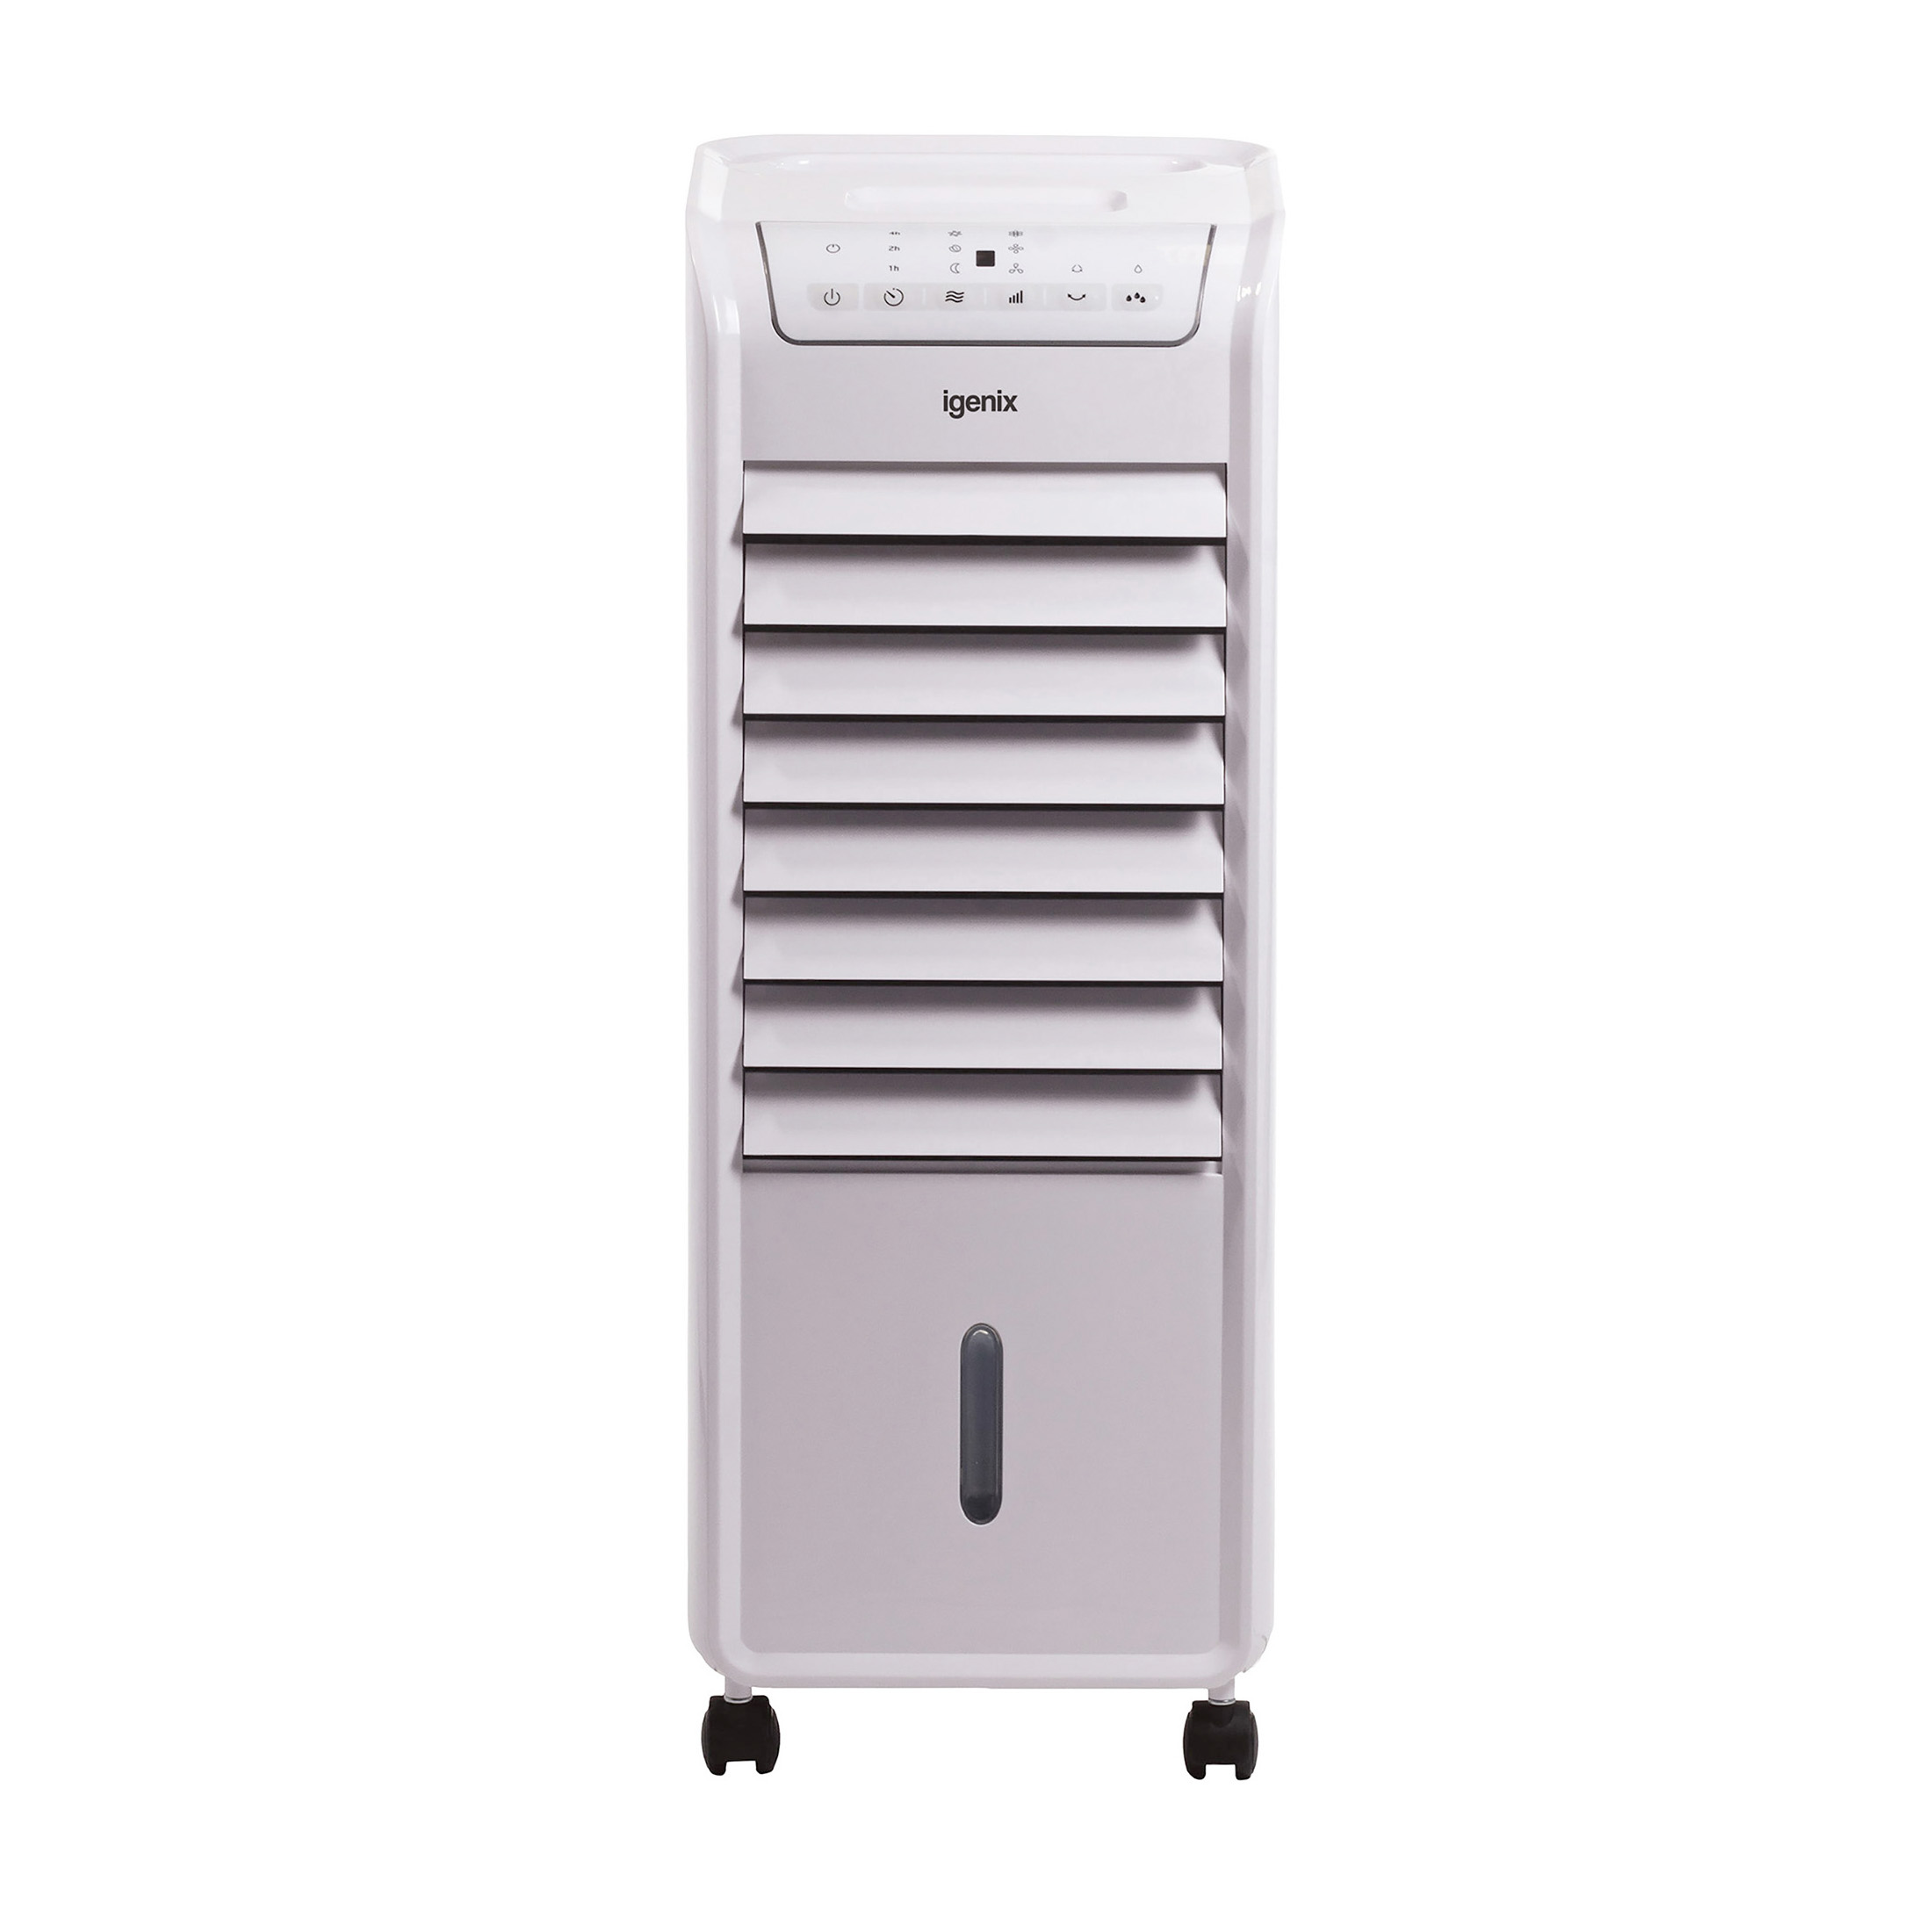 Igenix Air Cooler Portable with Oscillation Function Timer Remote Control 55 Watts White Ref IG9703